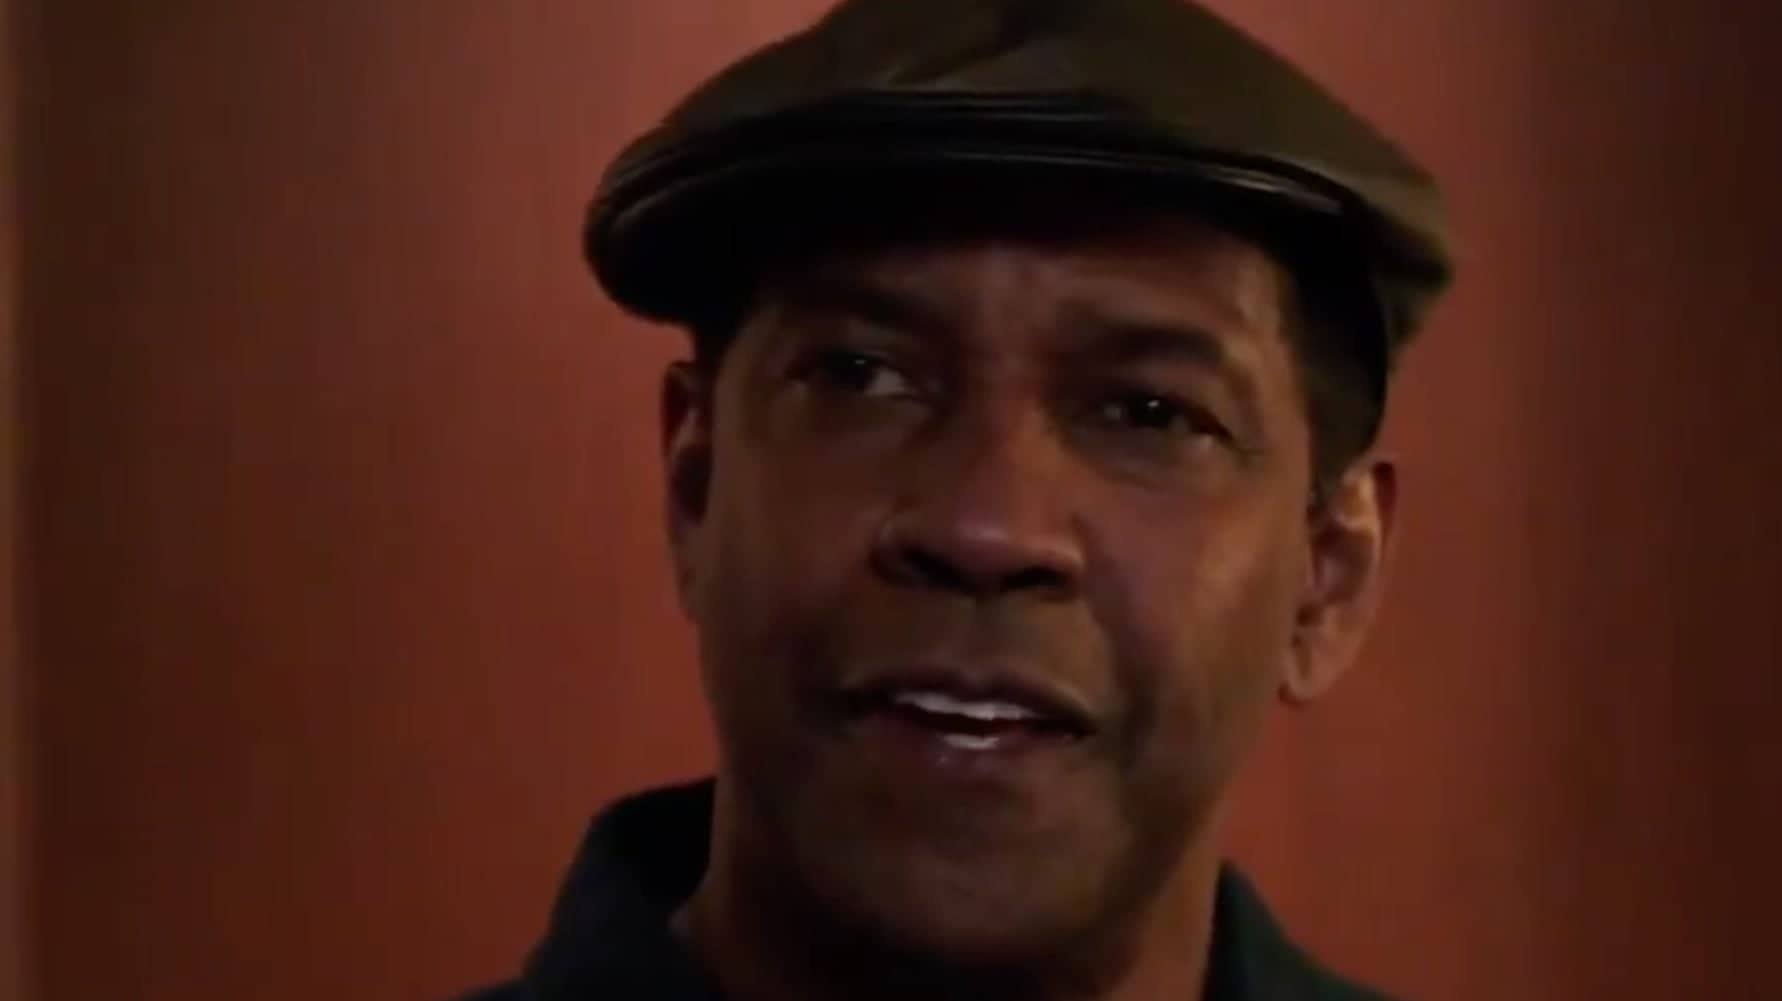 There will be consequences in new trailer of 'The Equalizer 2'